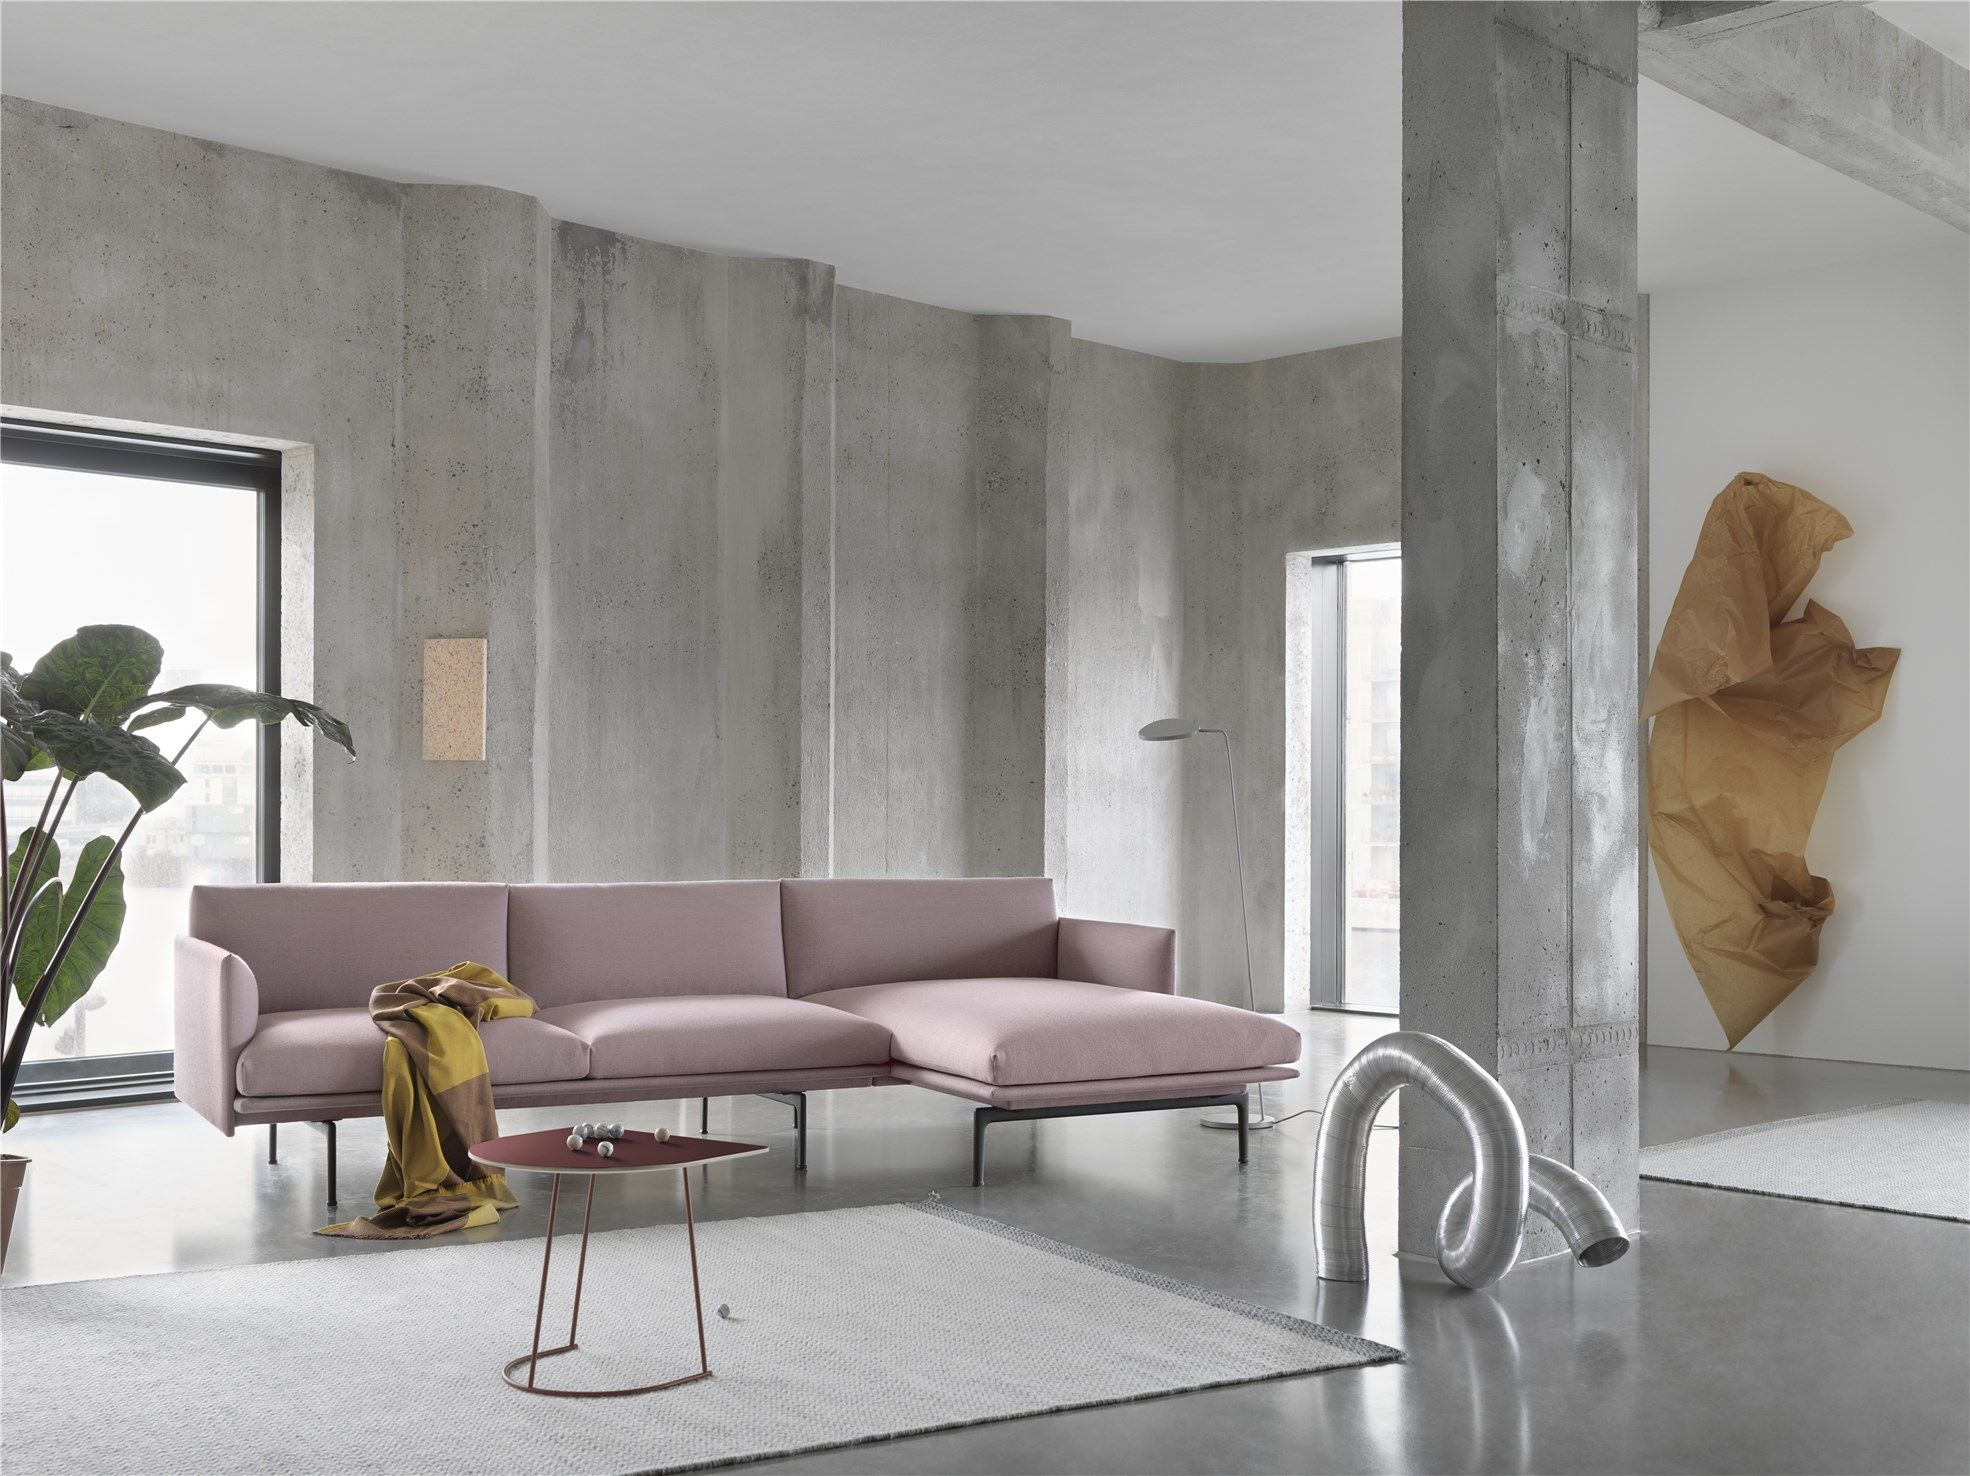 The New Collection From Muuto Mixes Pastels With Natural Materials